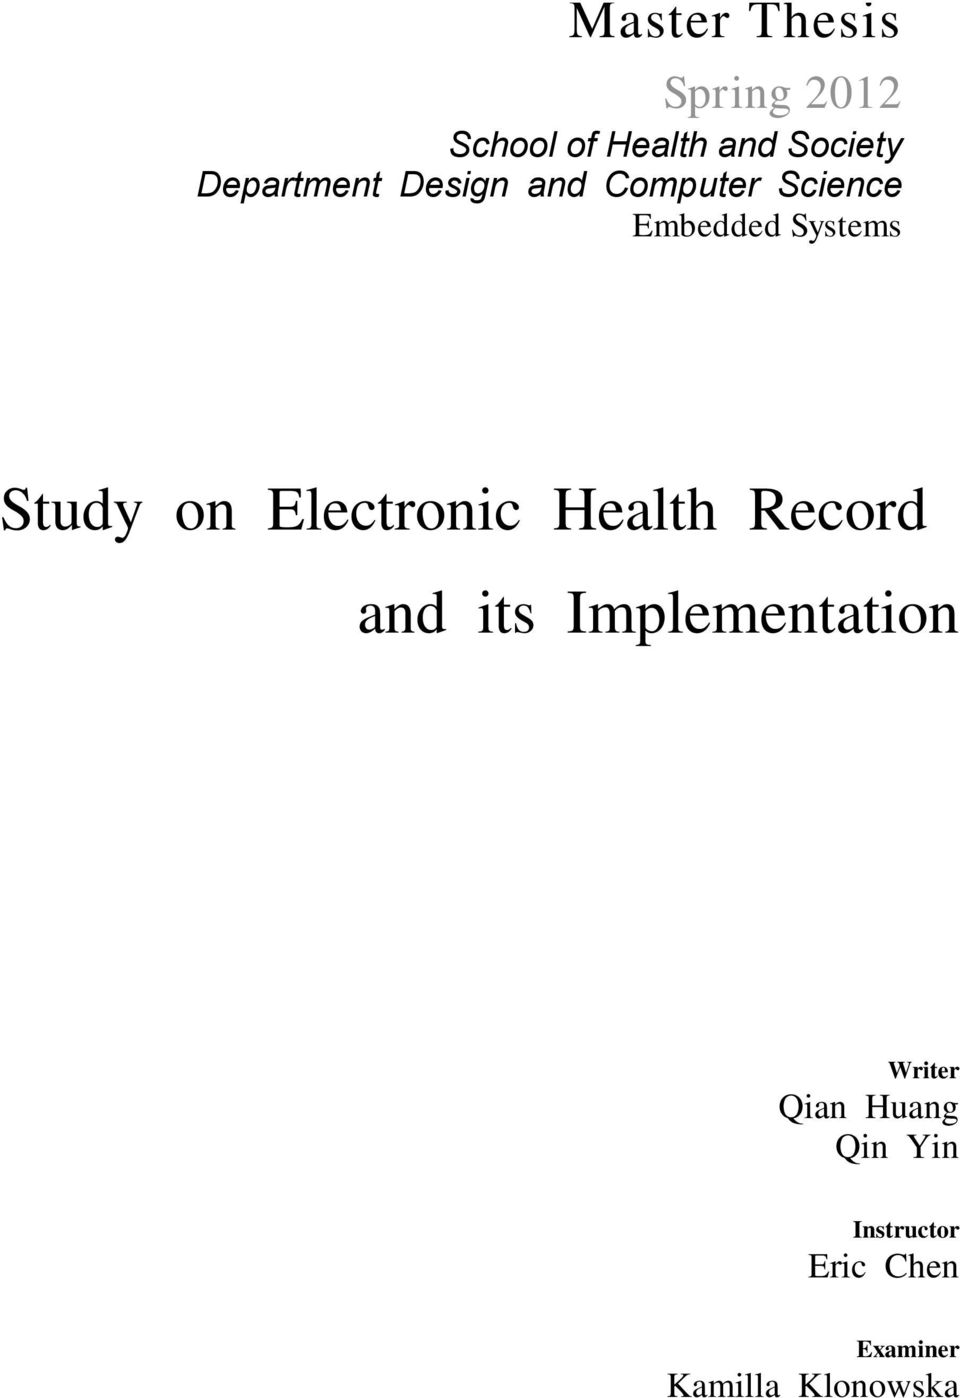 Study on Electronic Health Record and its Implementation